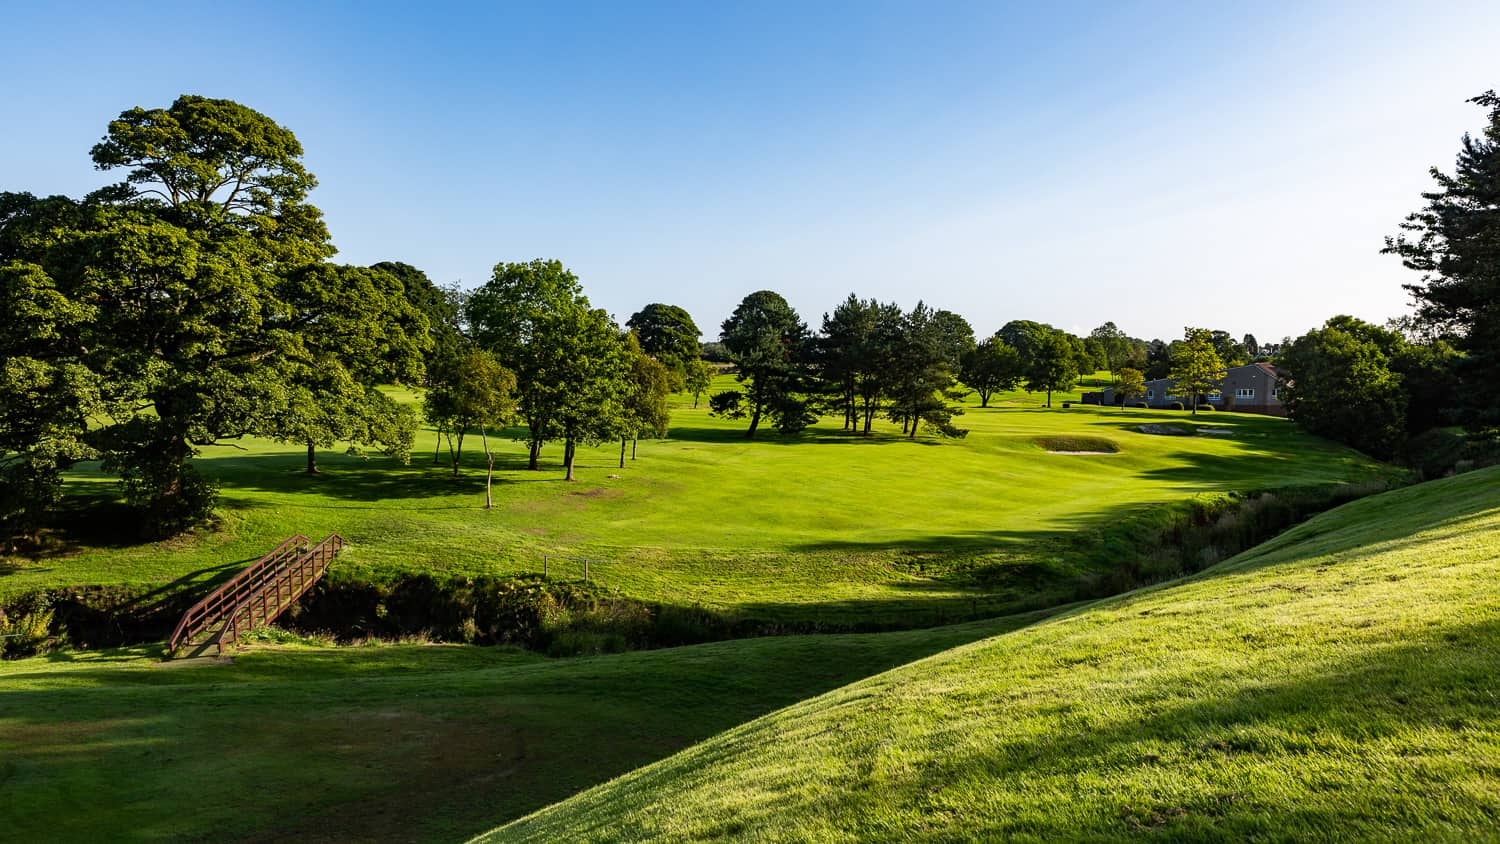 Uphall_Golf_Club_Course_Images (5 of 32)